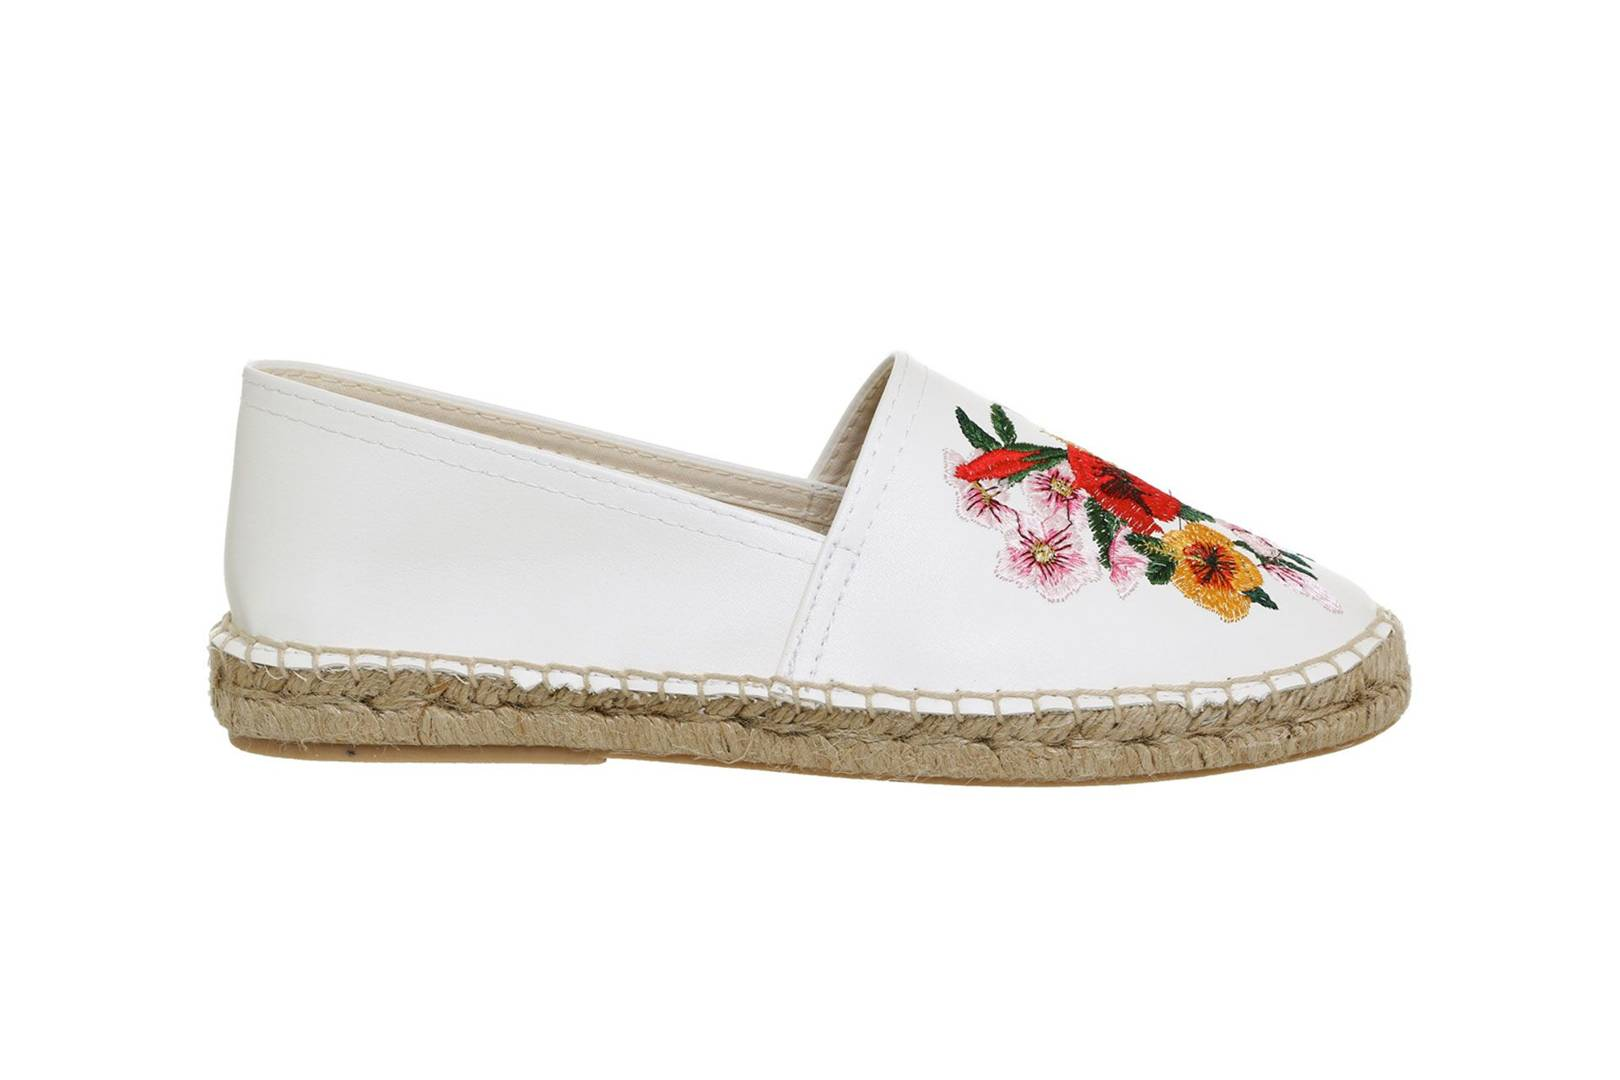 7b32d28fc2b Best Espadrille Summer Sandals To Buy Now